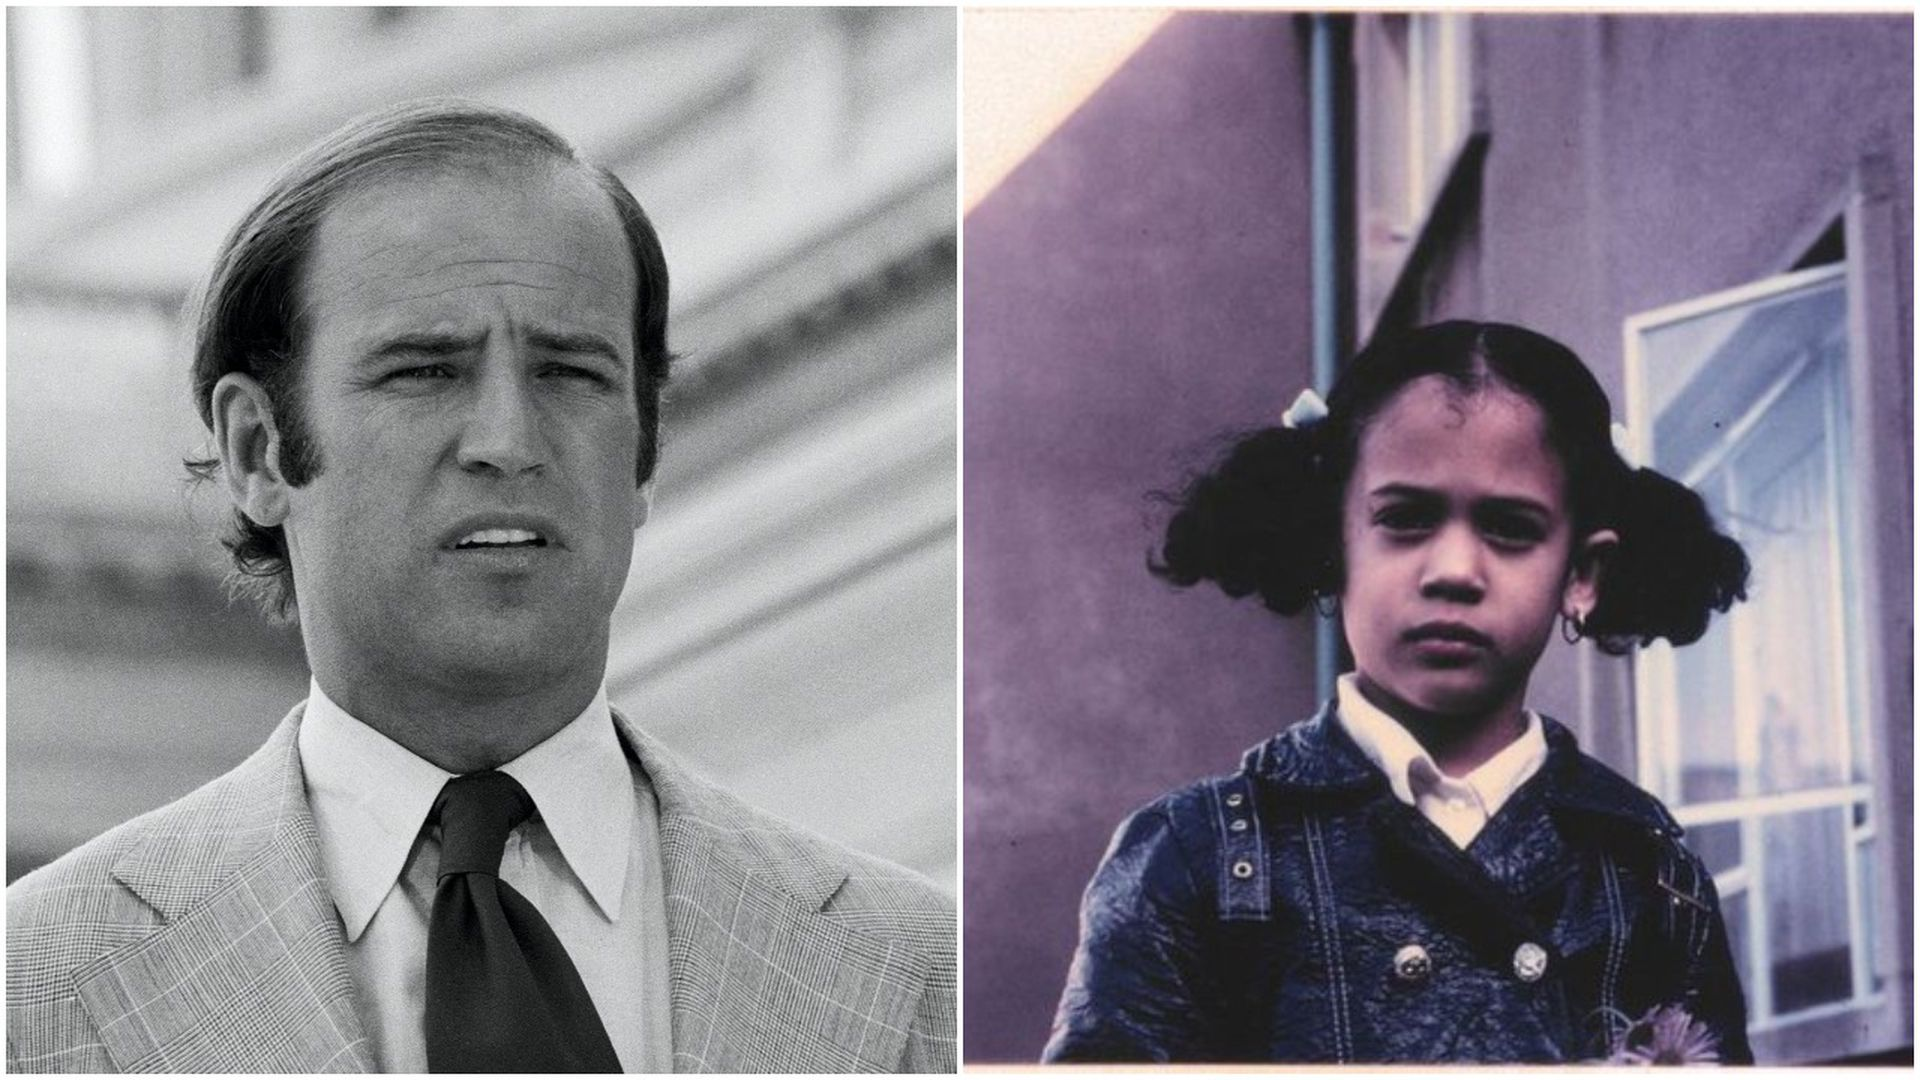 Then-Senator Joe Biden in 1974 and a young Kamala Harris